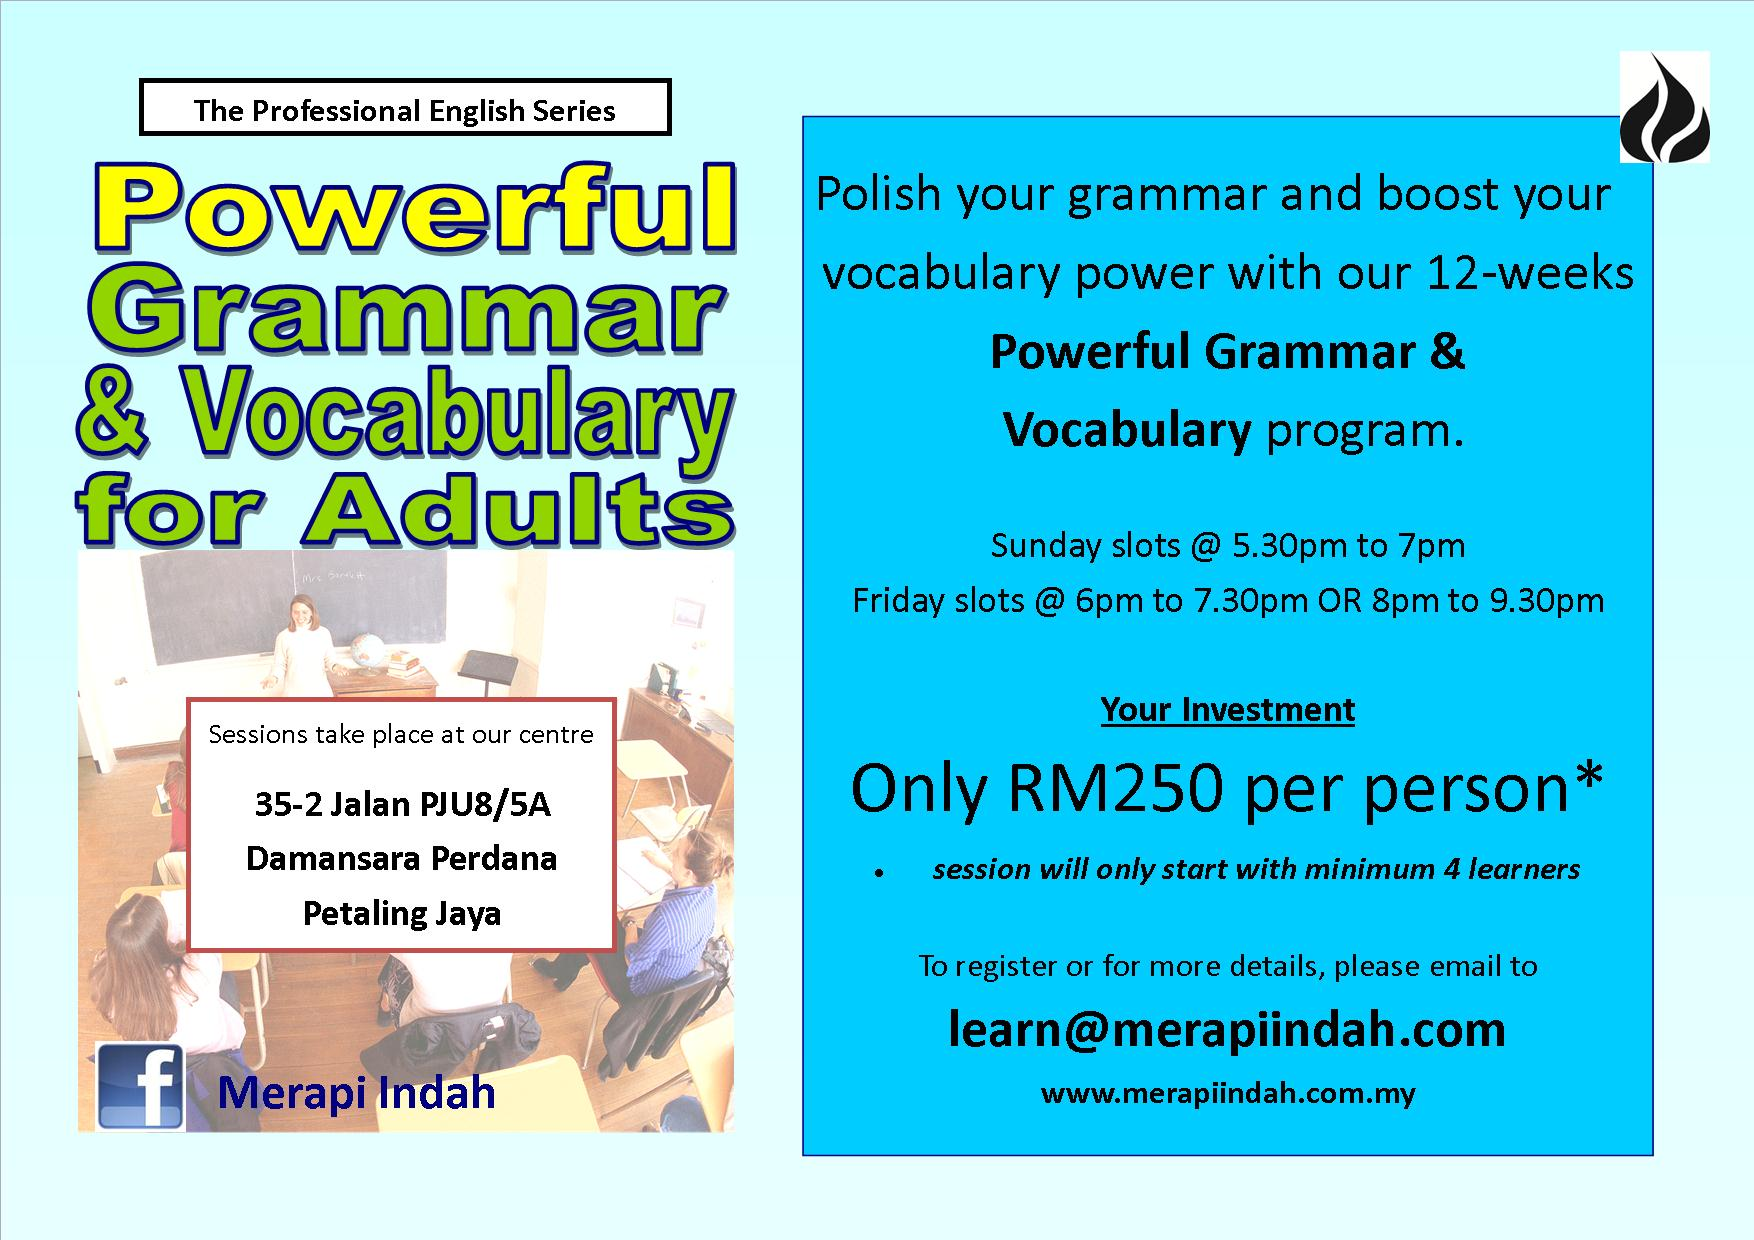 Powerful Grammar And Vocabulary Program For Adults